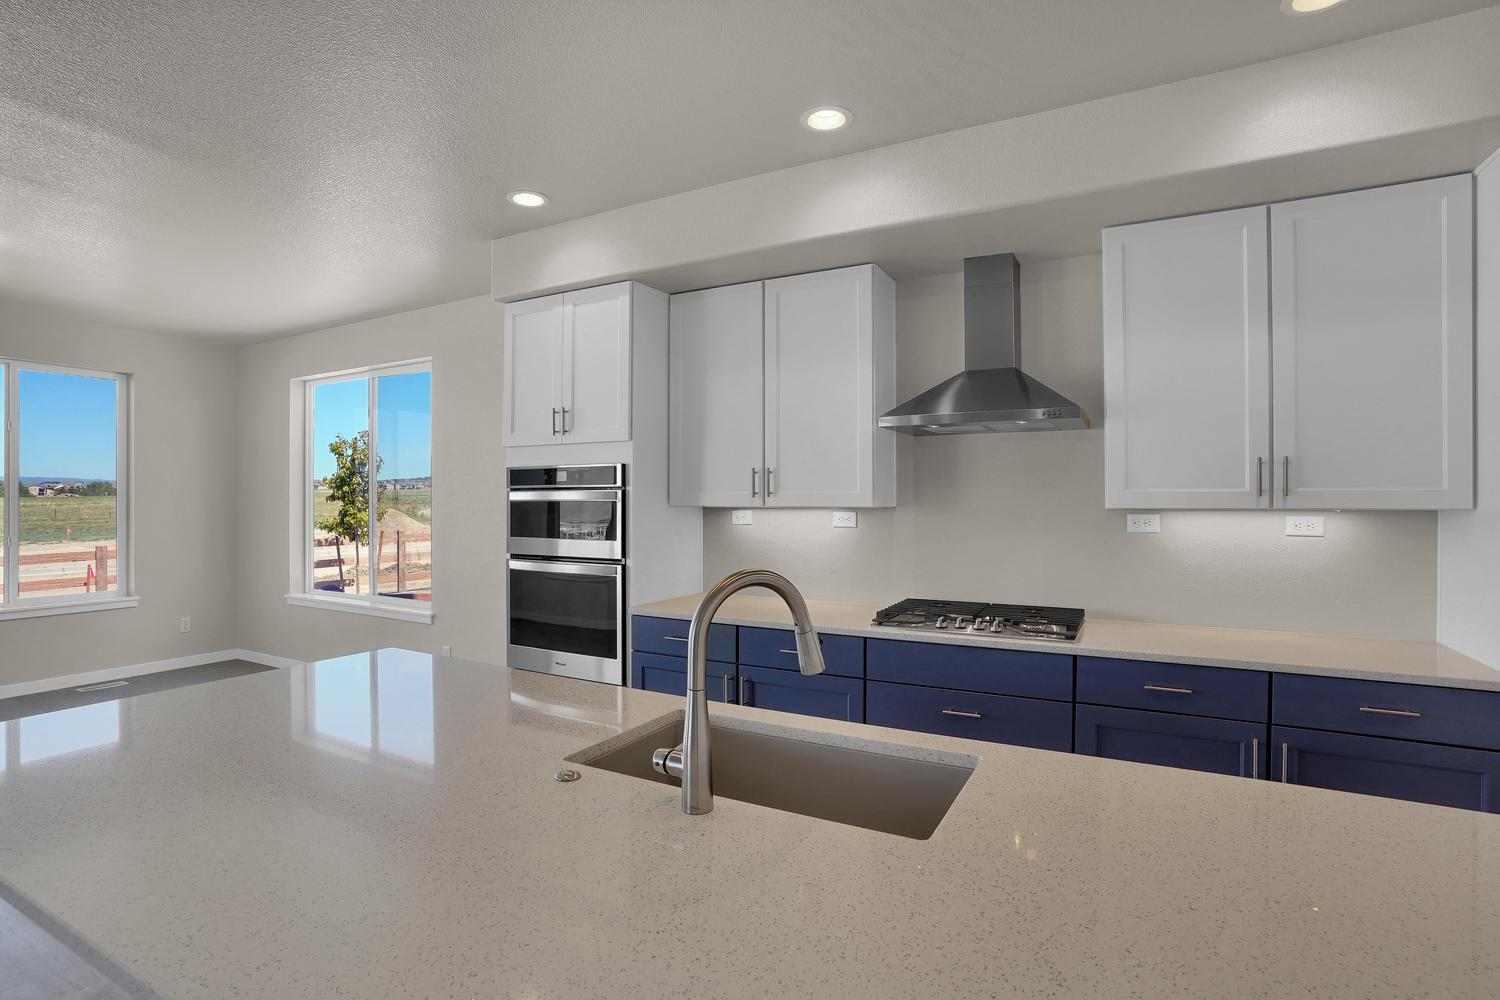 Kitchen featured in the Princeton By Keller Homes, A Toll Bros. Co. in Colorado Springs, CO